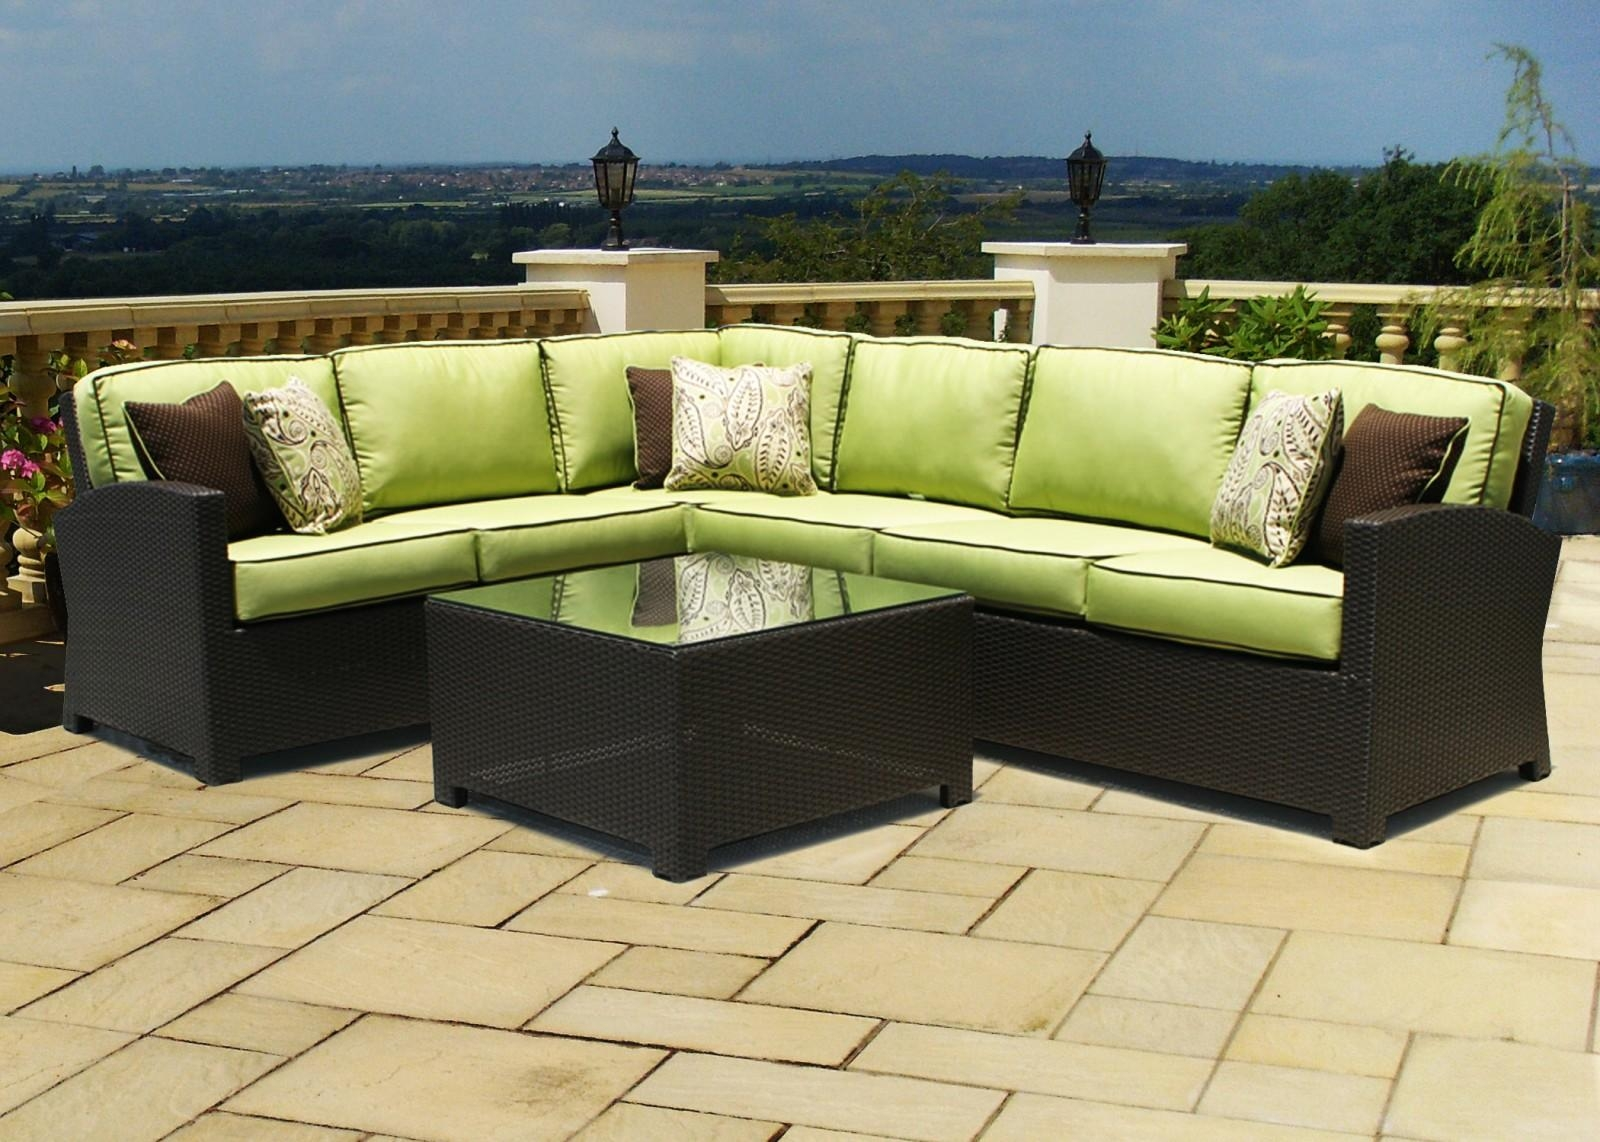 Sofas : Marvelous Outside Chair Cushions Rattan Furniture Cushions Throughout Cheap Patio Sofas (View 12 of 22)